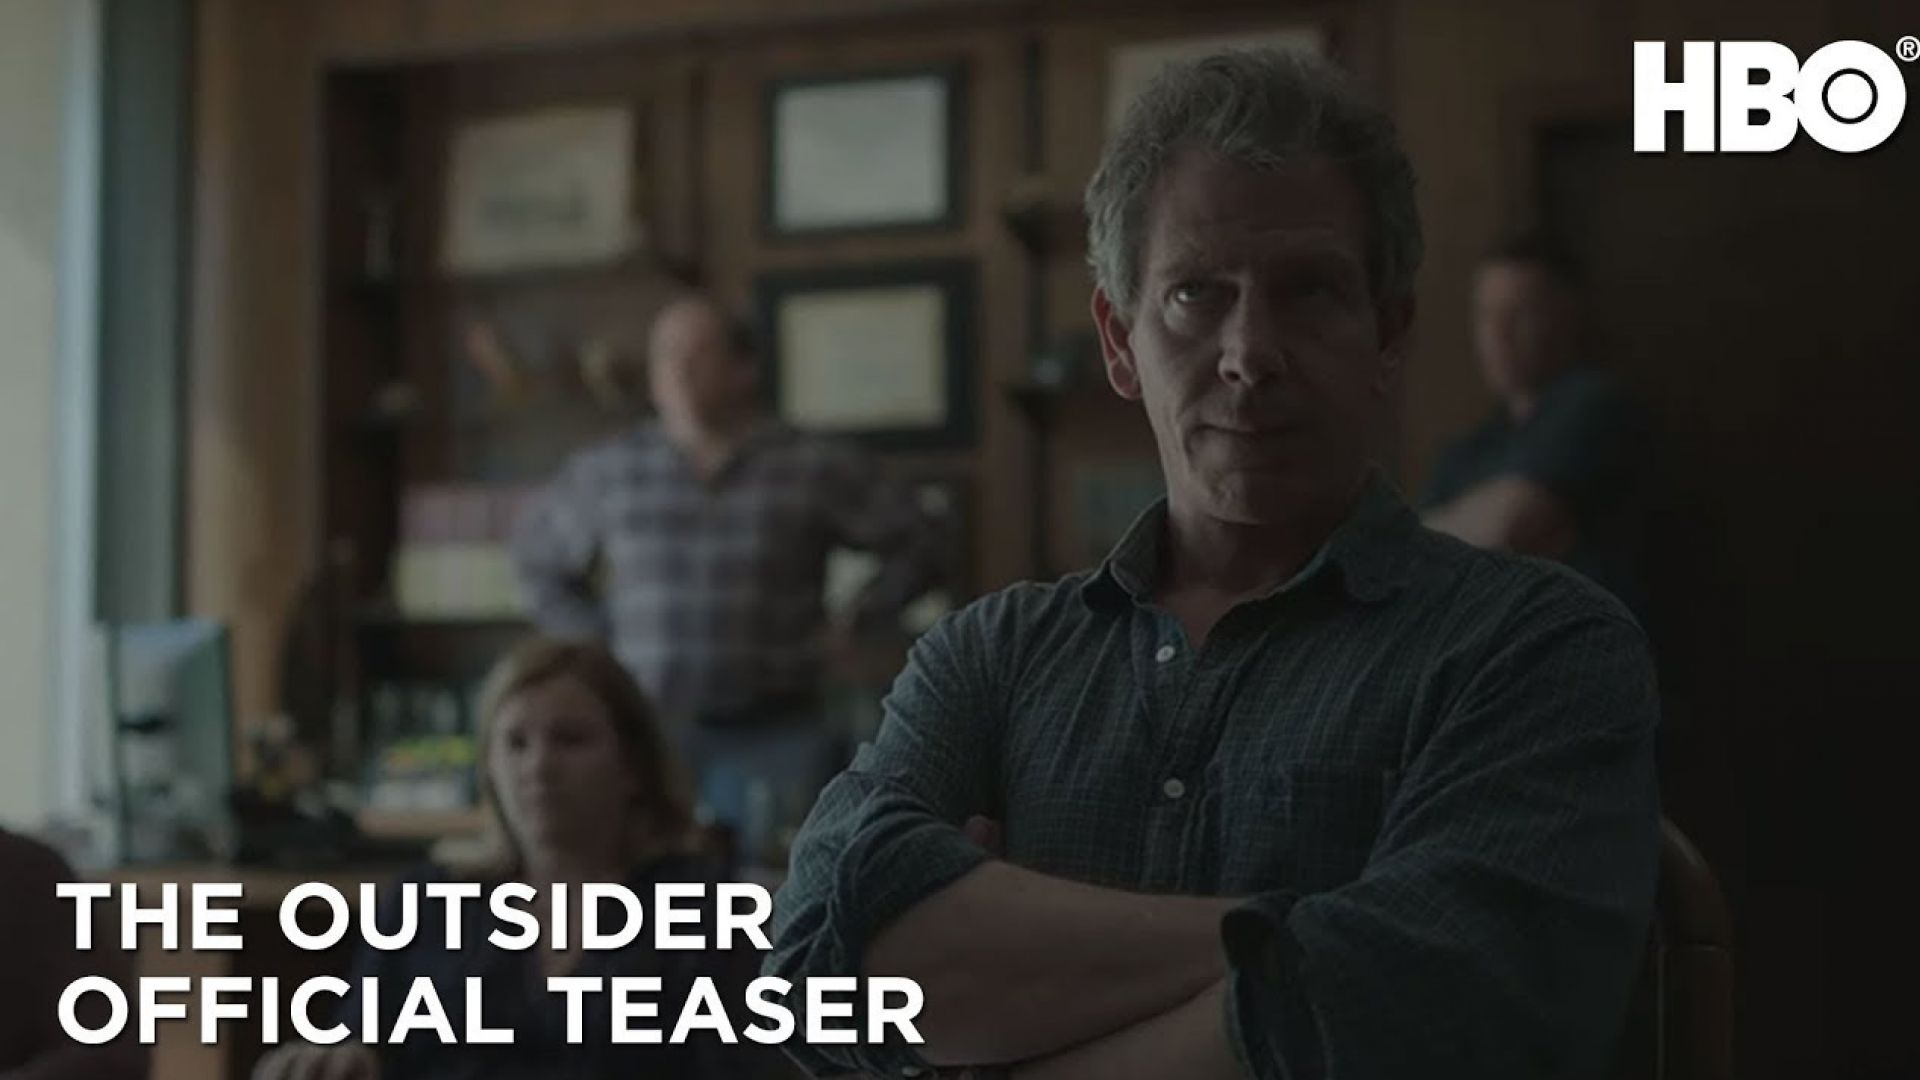 'The Outsider' Trailer, HBO